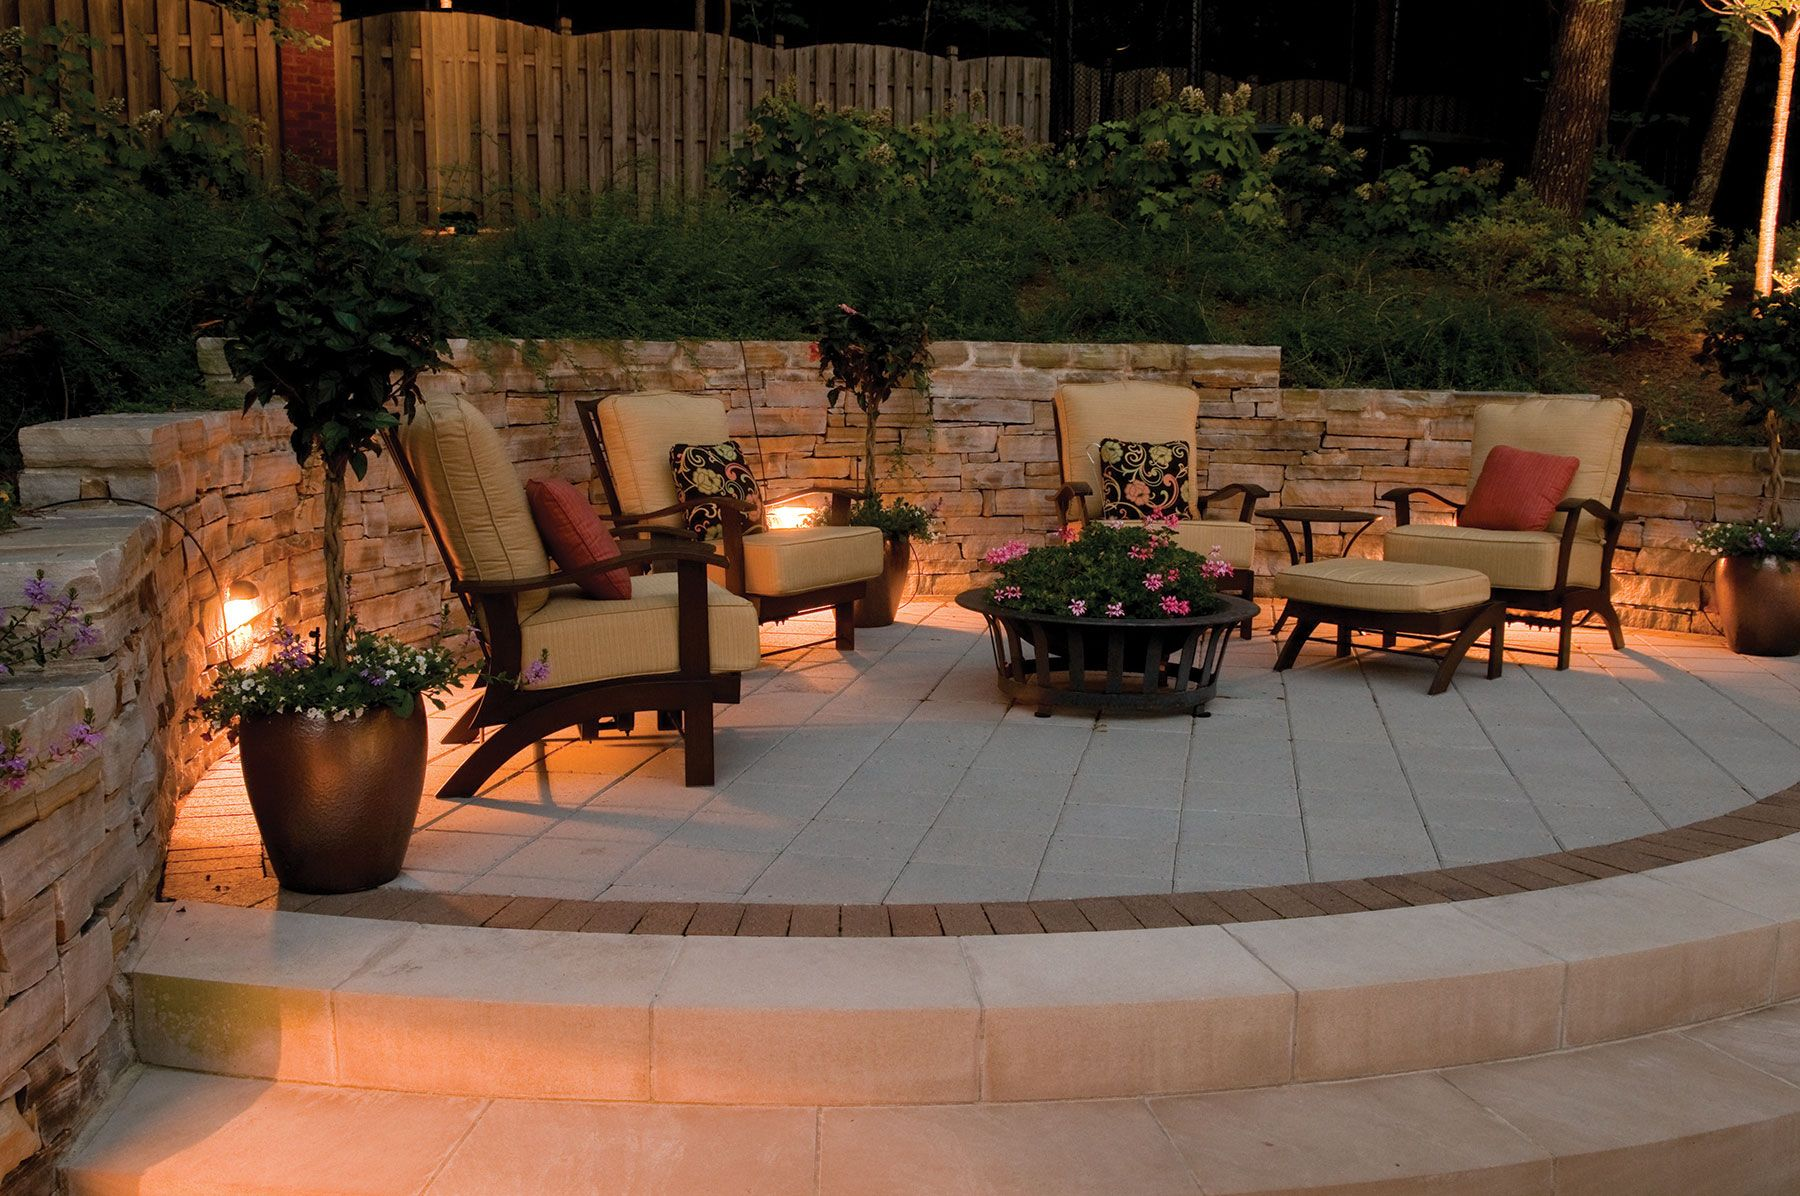 25 amazing deck lights ideas hard and simple outdoor samples 25 amazing deck lights ideas hard and simple outdoor samples aloadofball Gallery